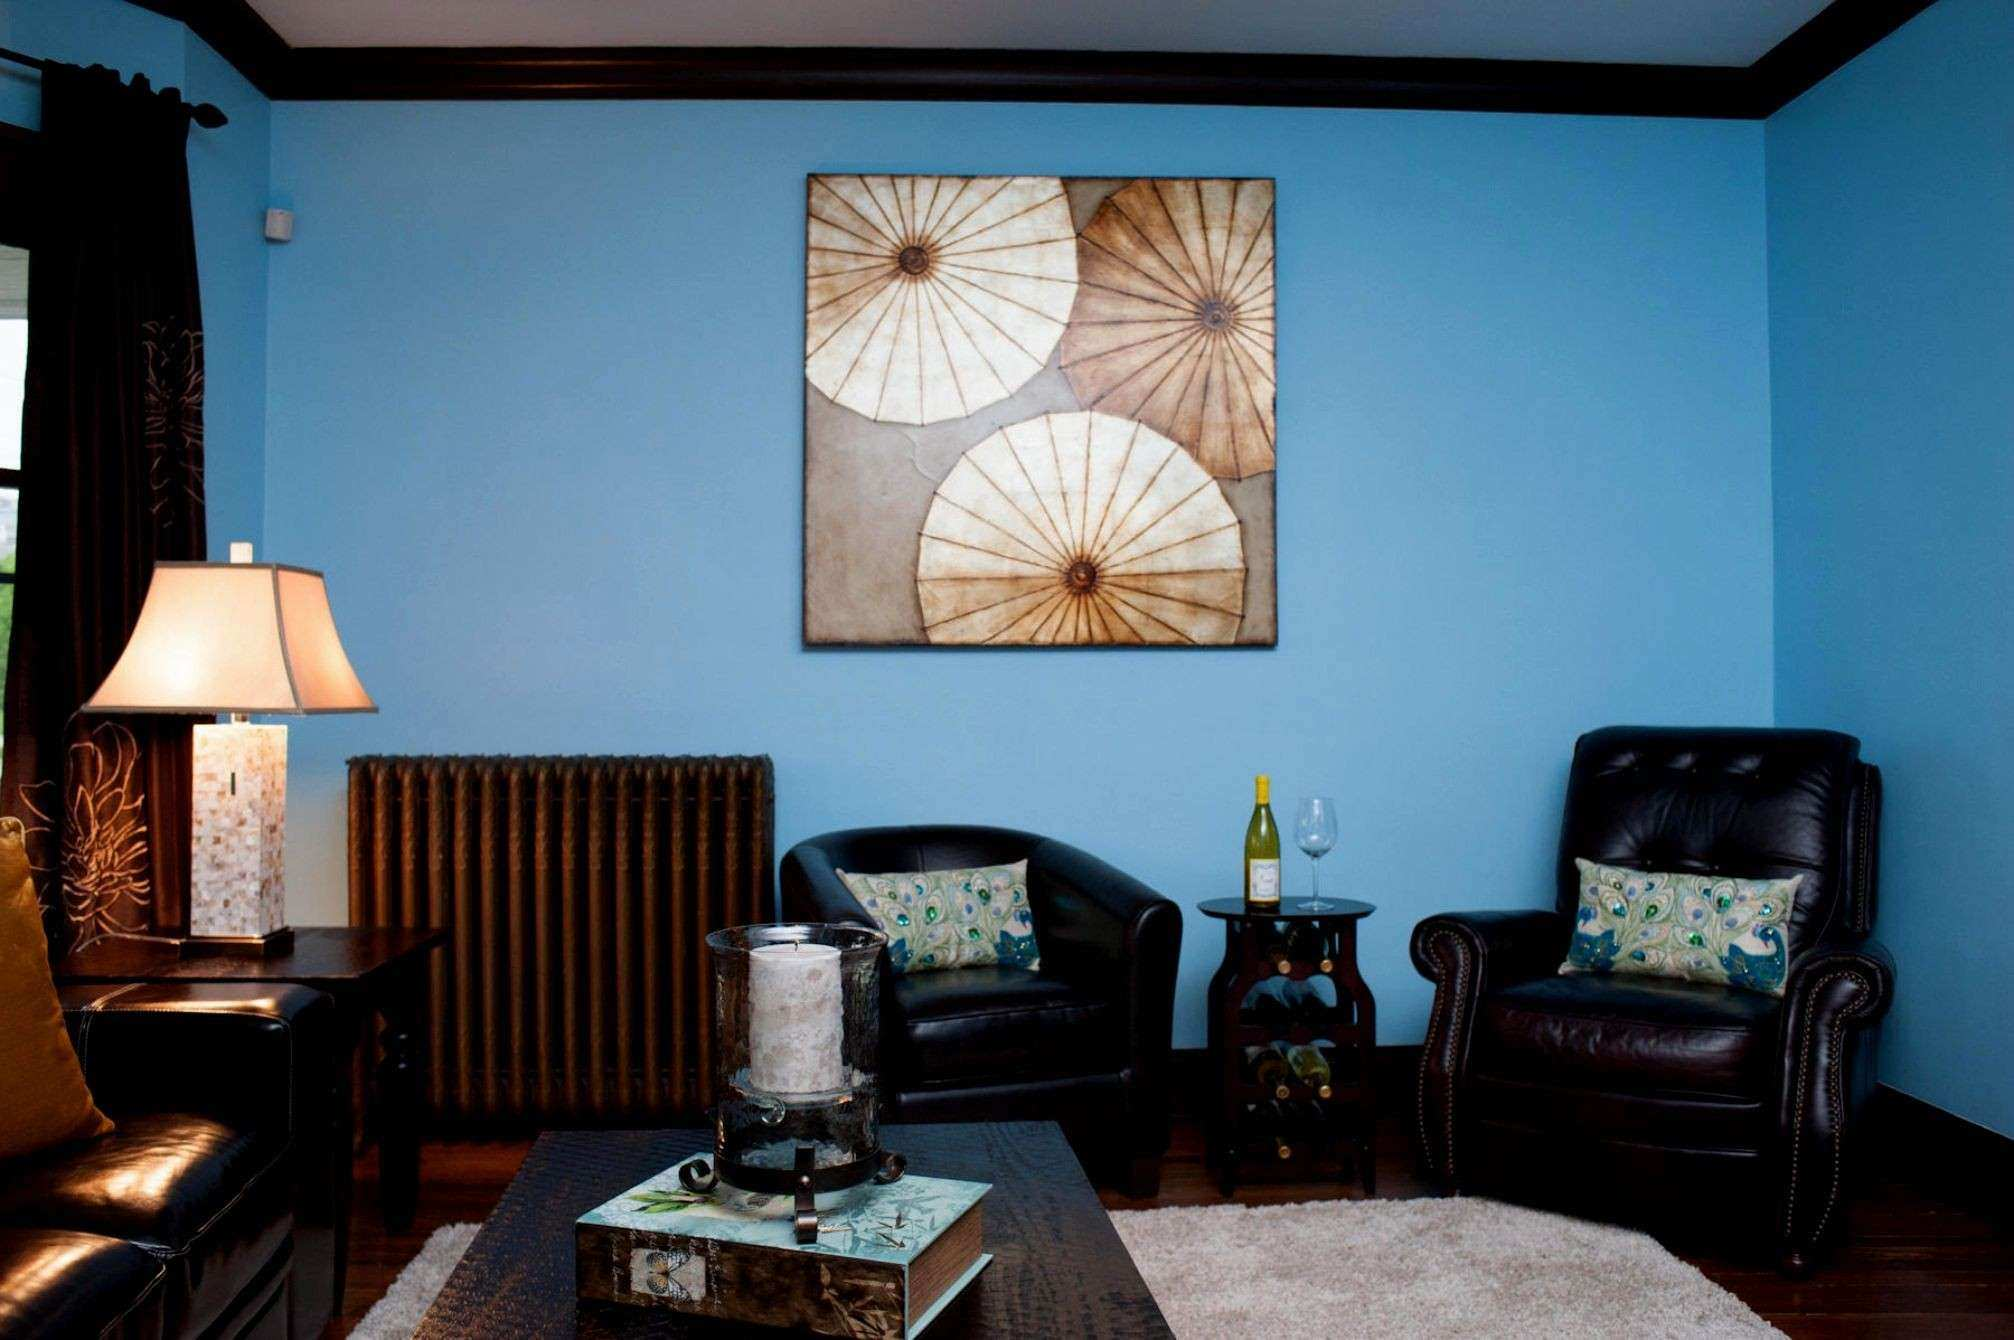 Fancy Teal and Brown Wall Decor Ideas